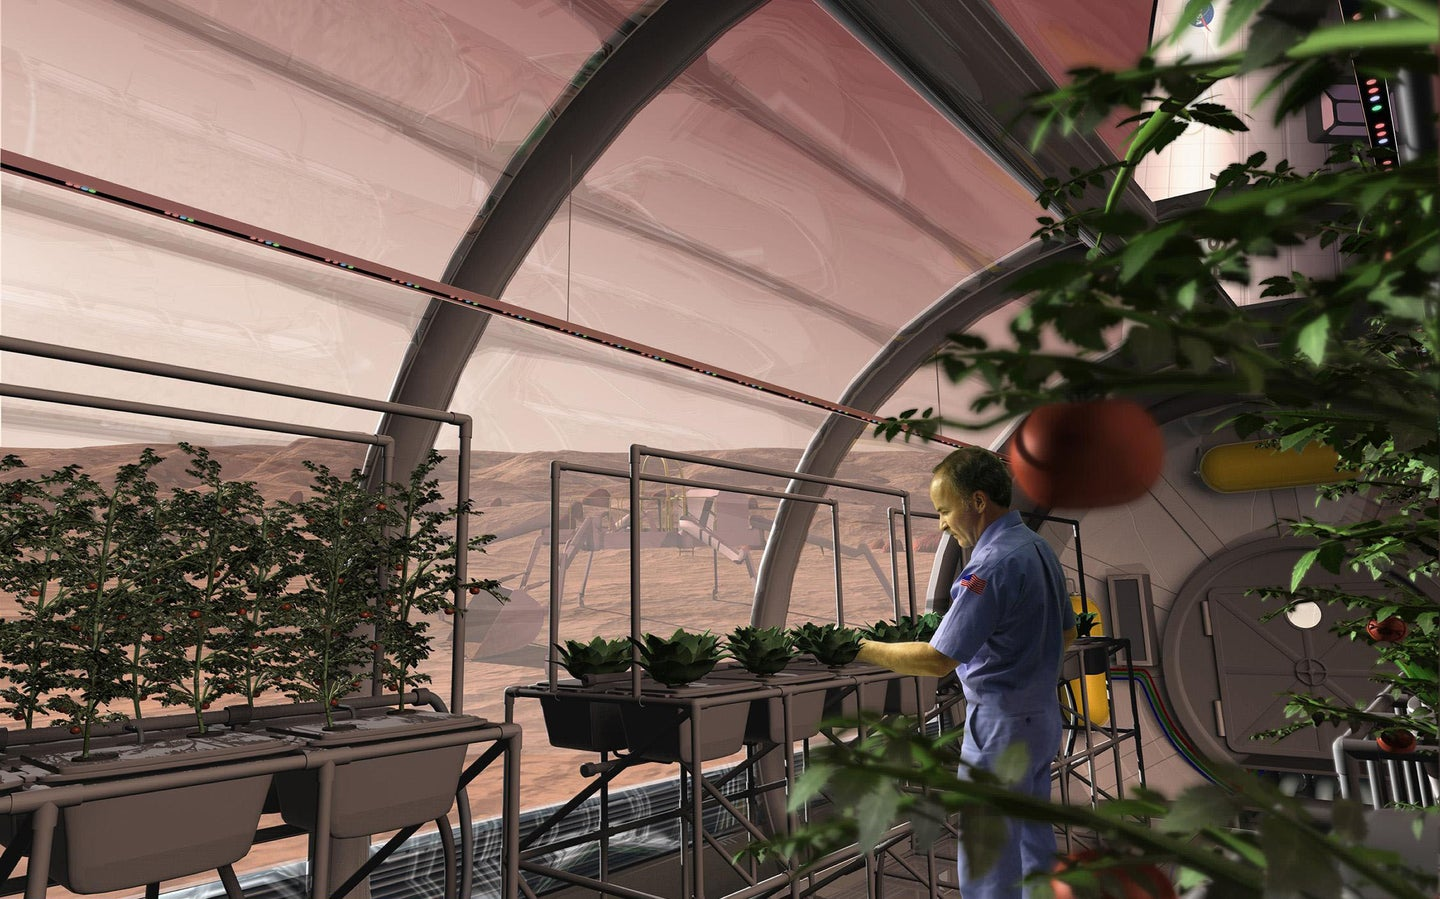 Crops Grow On Fake Moon And Mars Soil